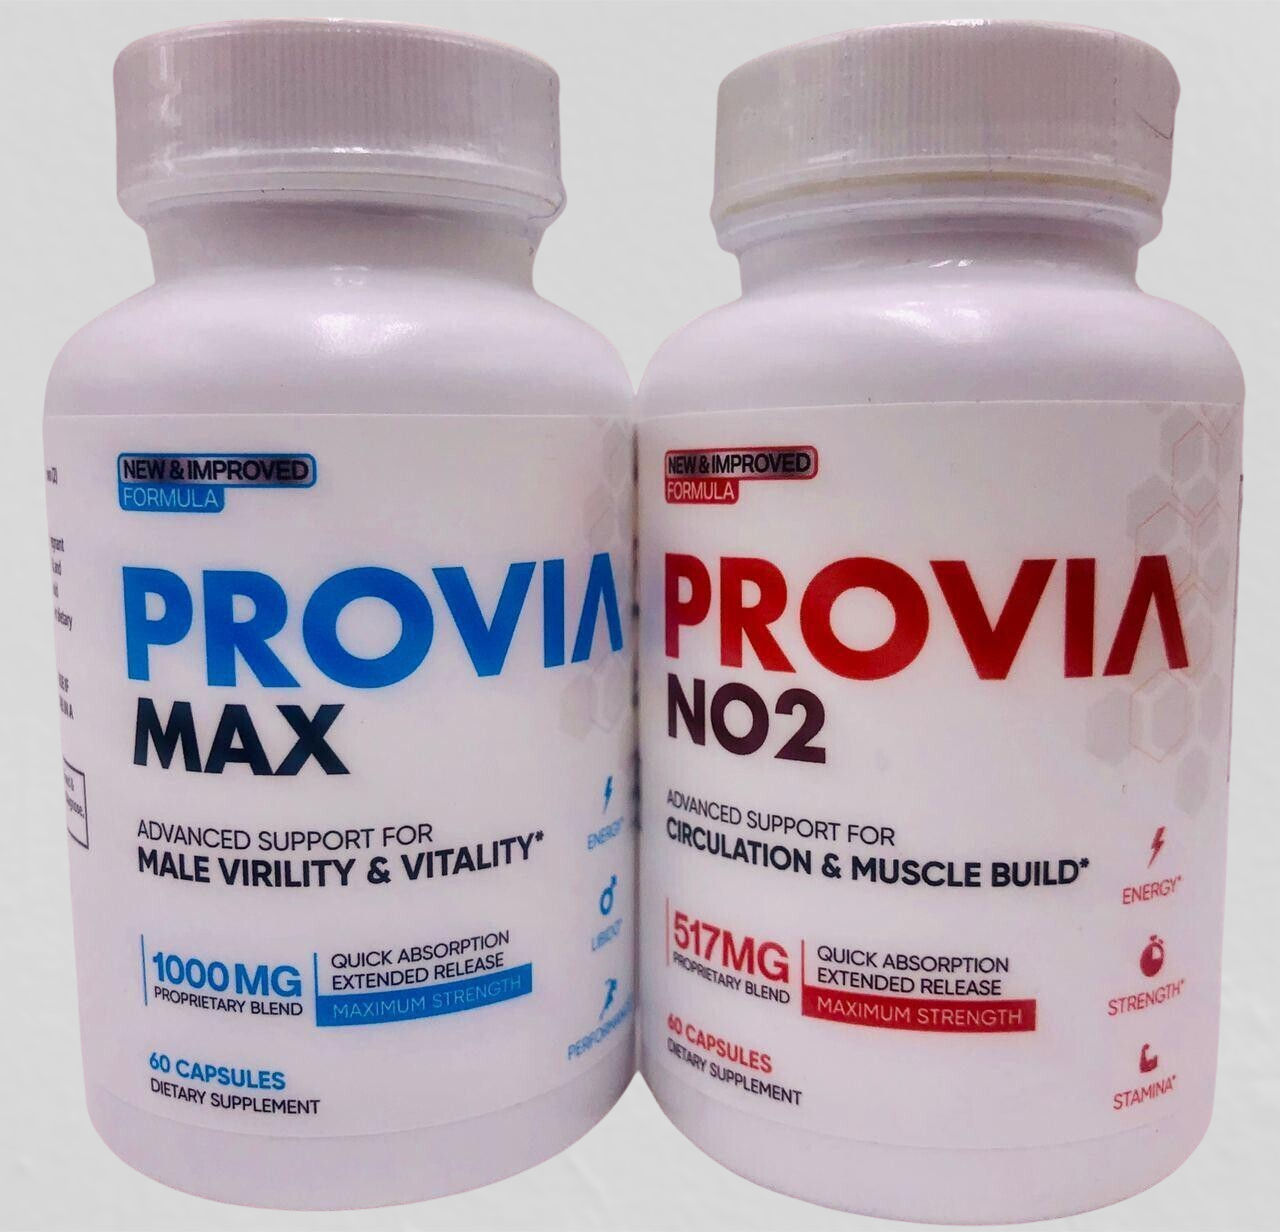 PROVIA MAX - Male Virility and Vitality Support Enhancement & PROVIA NO2 Boost